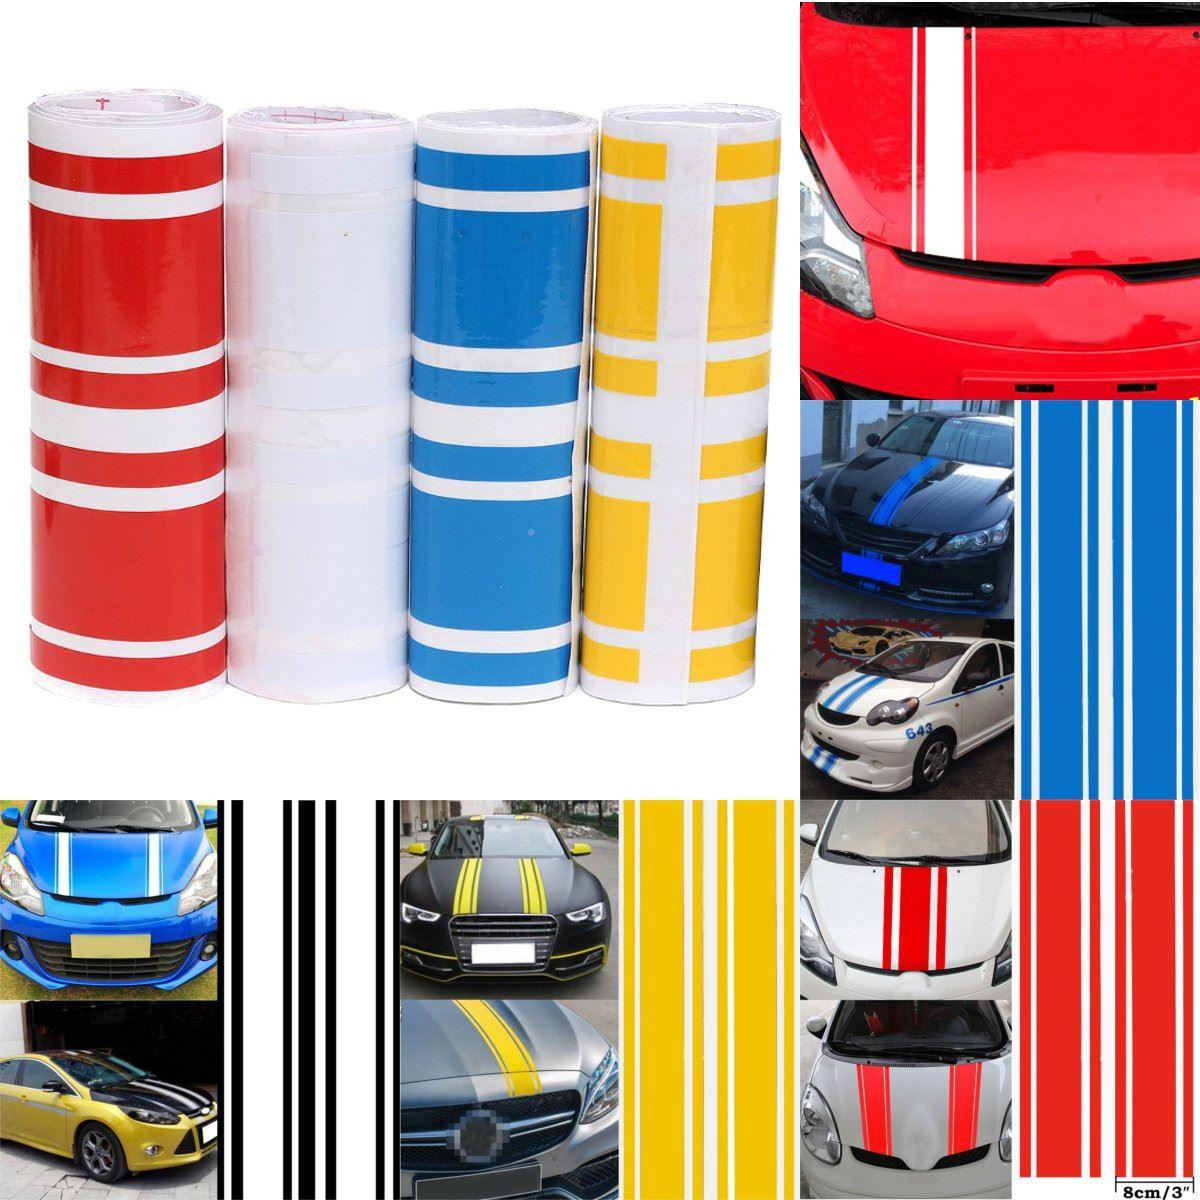 2019 wholesale 183 x 17 2cm car styling 3d car hood side vinyl stripe sticker body bumper decal engine cover pinstripe from bdauto 31 56 dhgate com